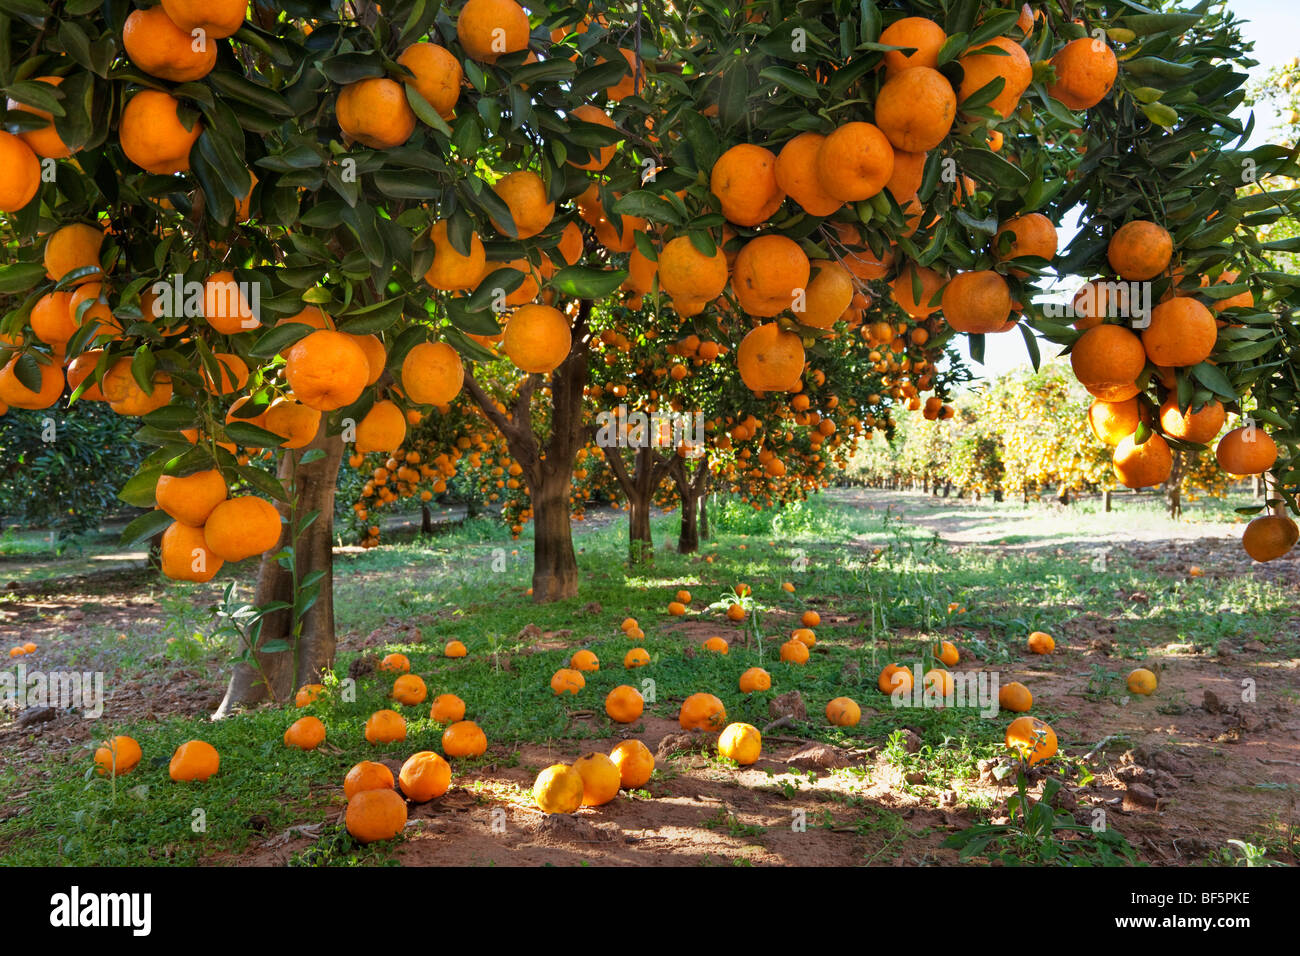 Orange laden fruit trees in an orchard - Stock Image